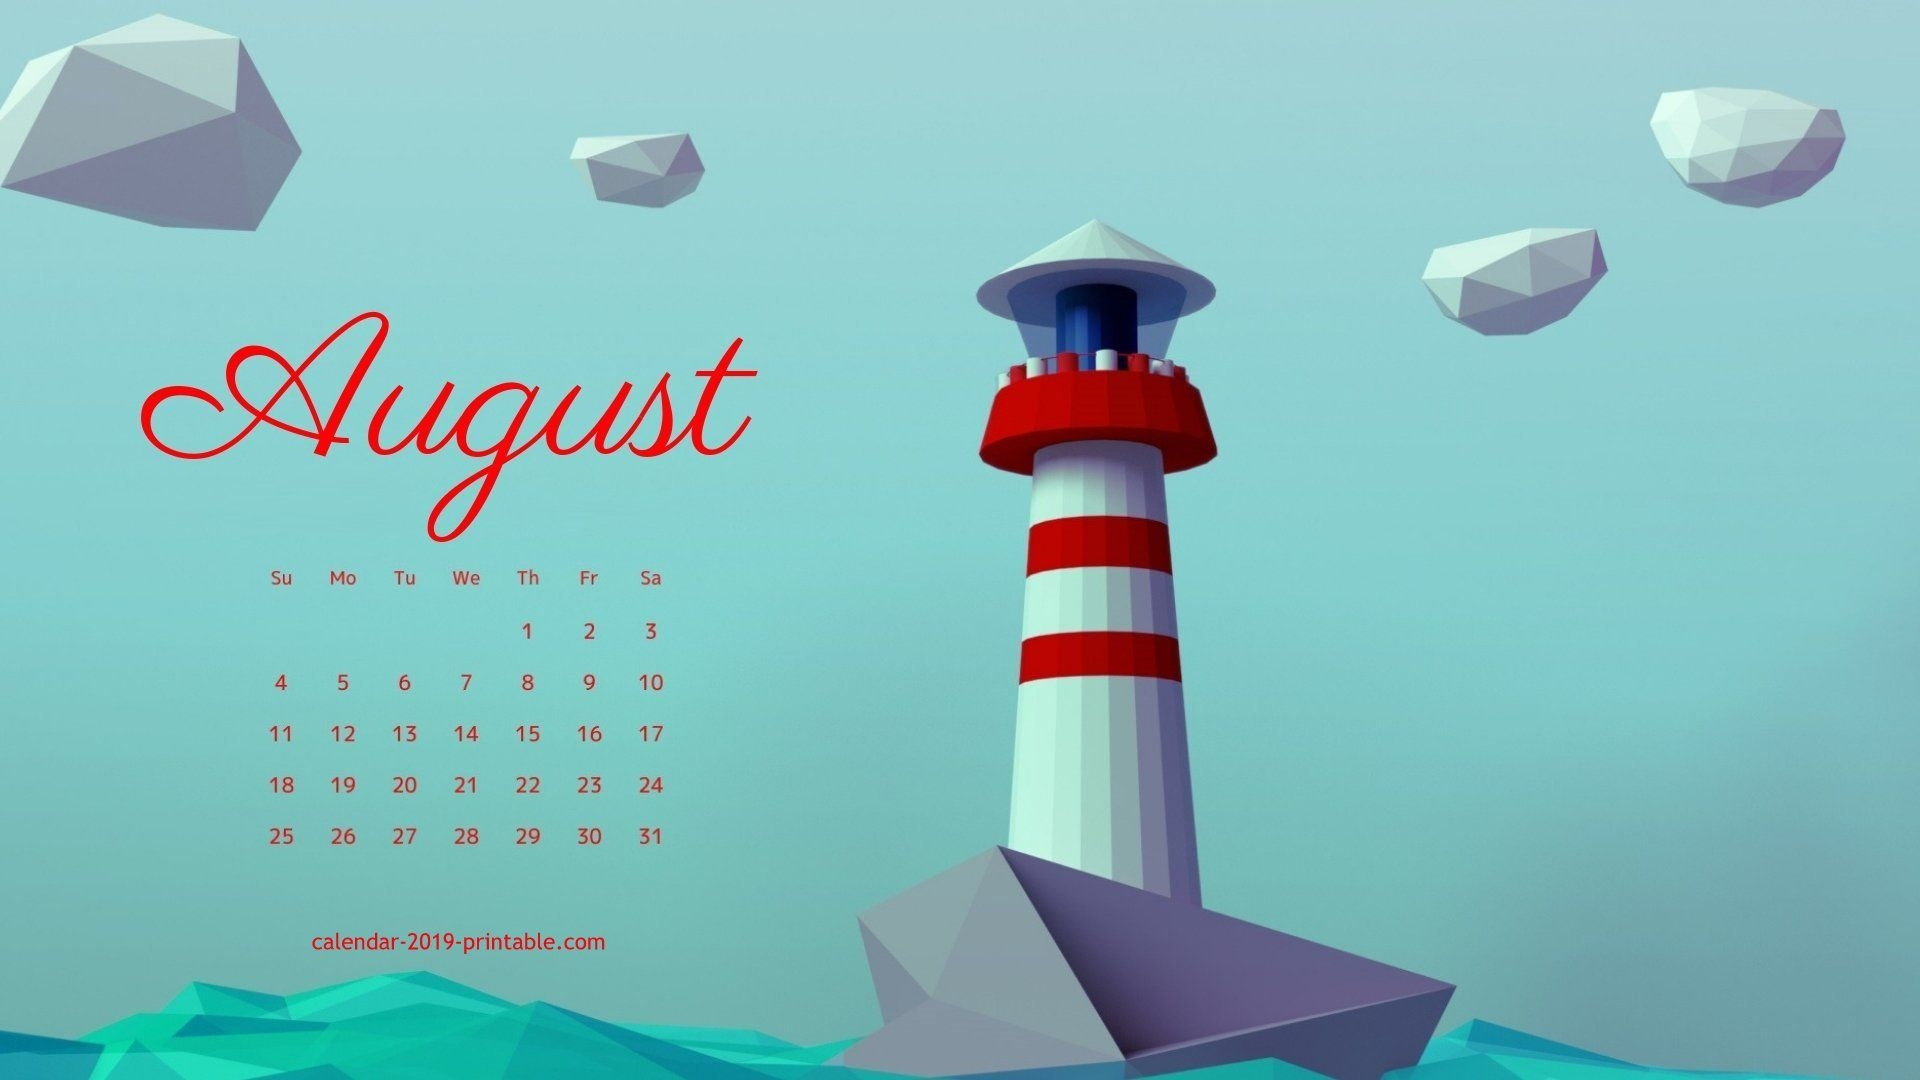 august 2019 calendar hd wallpaper 2019 calendars pinterest::August 2019 iPhone Calendar Wallpaper